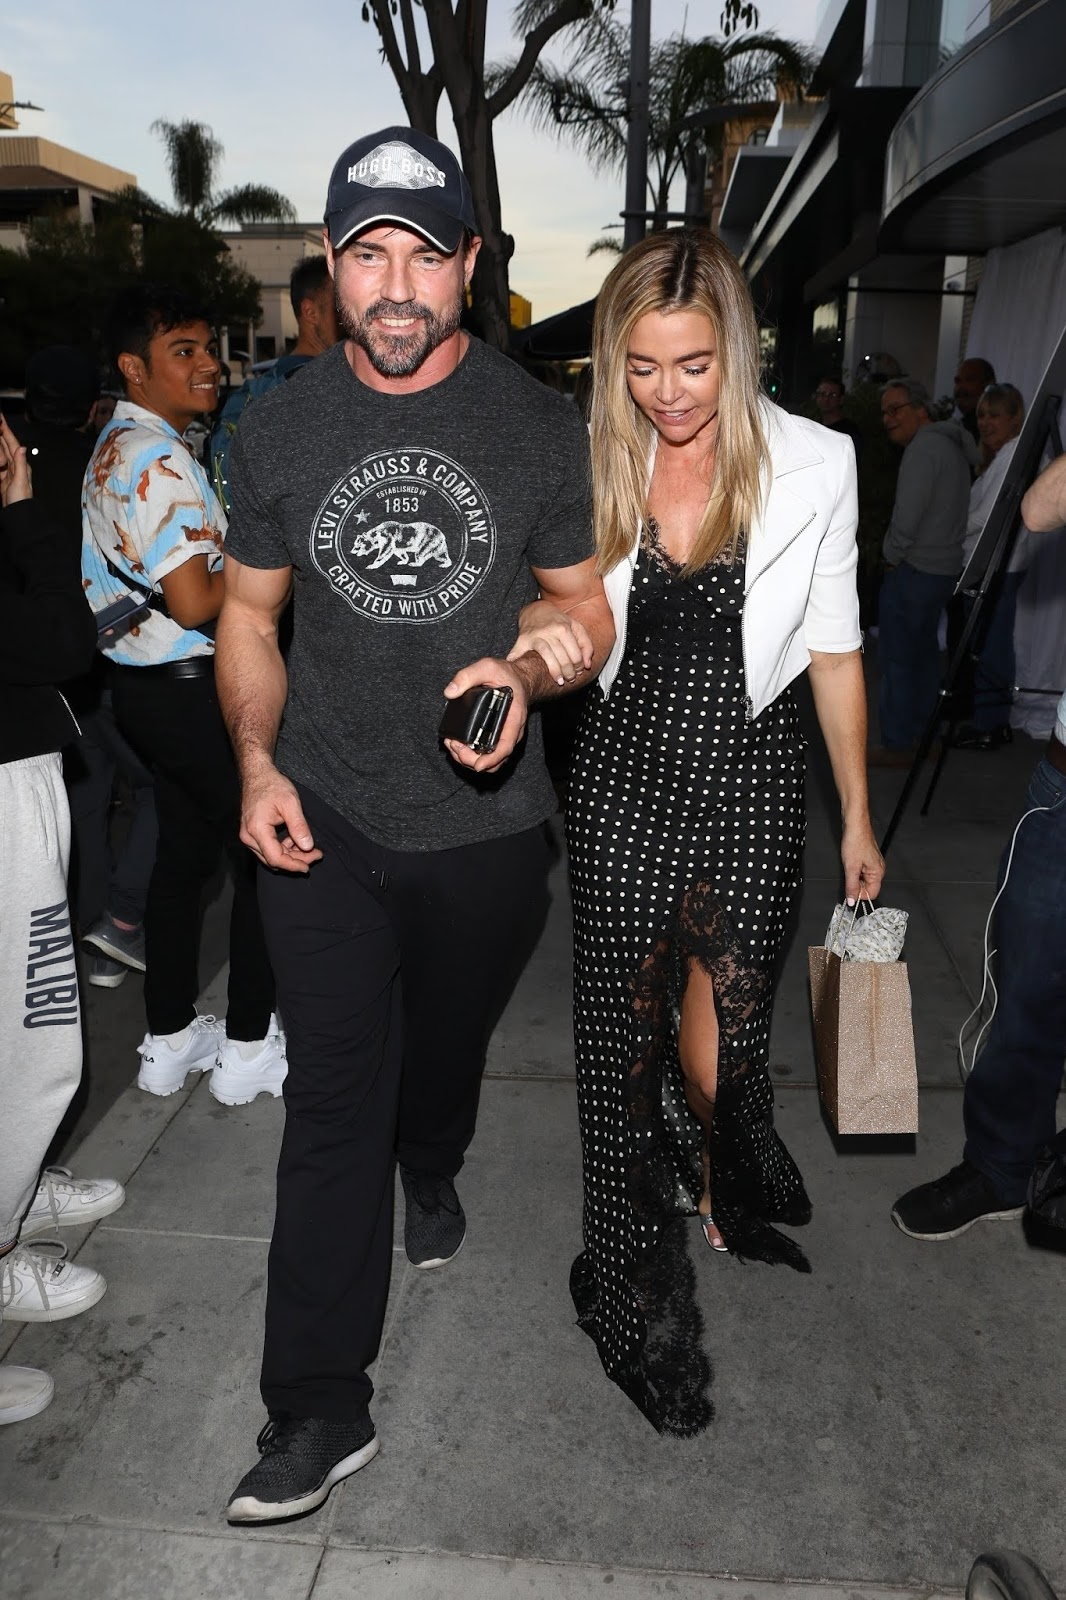 Denise Richards and Aaron Phypers attends Andy Cohen's baby shower at the Palm Restaurant in Beverly Hills - 01/26/2019